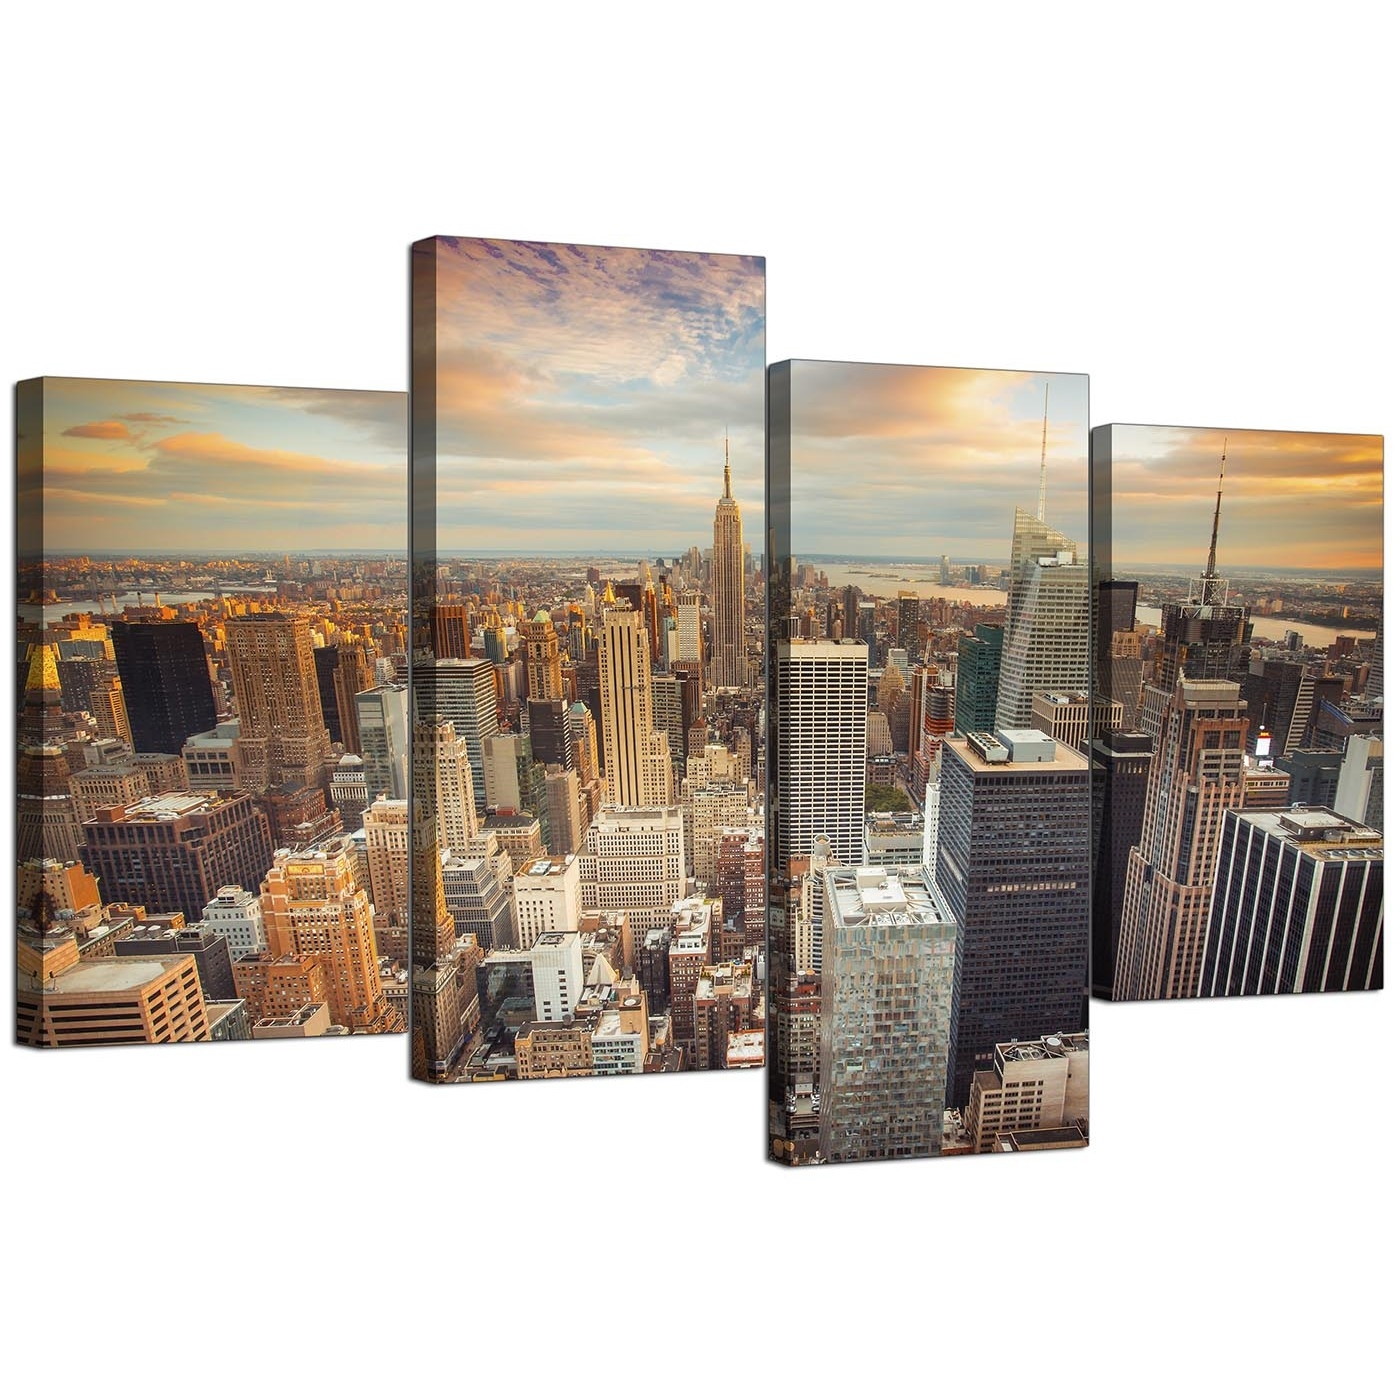 Canvas Prints Of The New York Skyline For Your Living Room – 4 Panel Intended For Latest New York Canvas Wall Art (View 15 of 15)